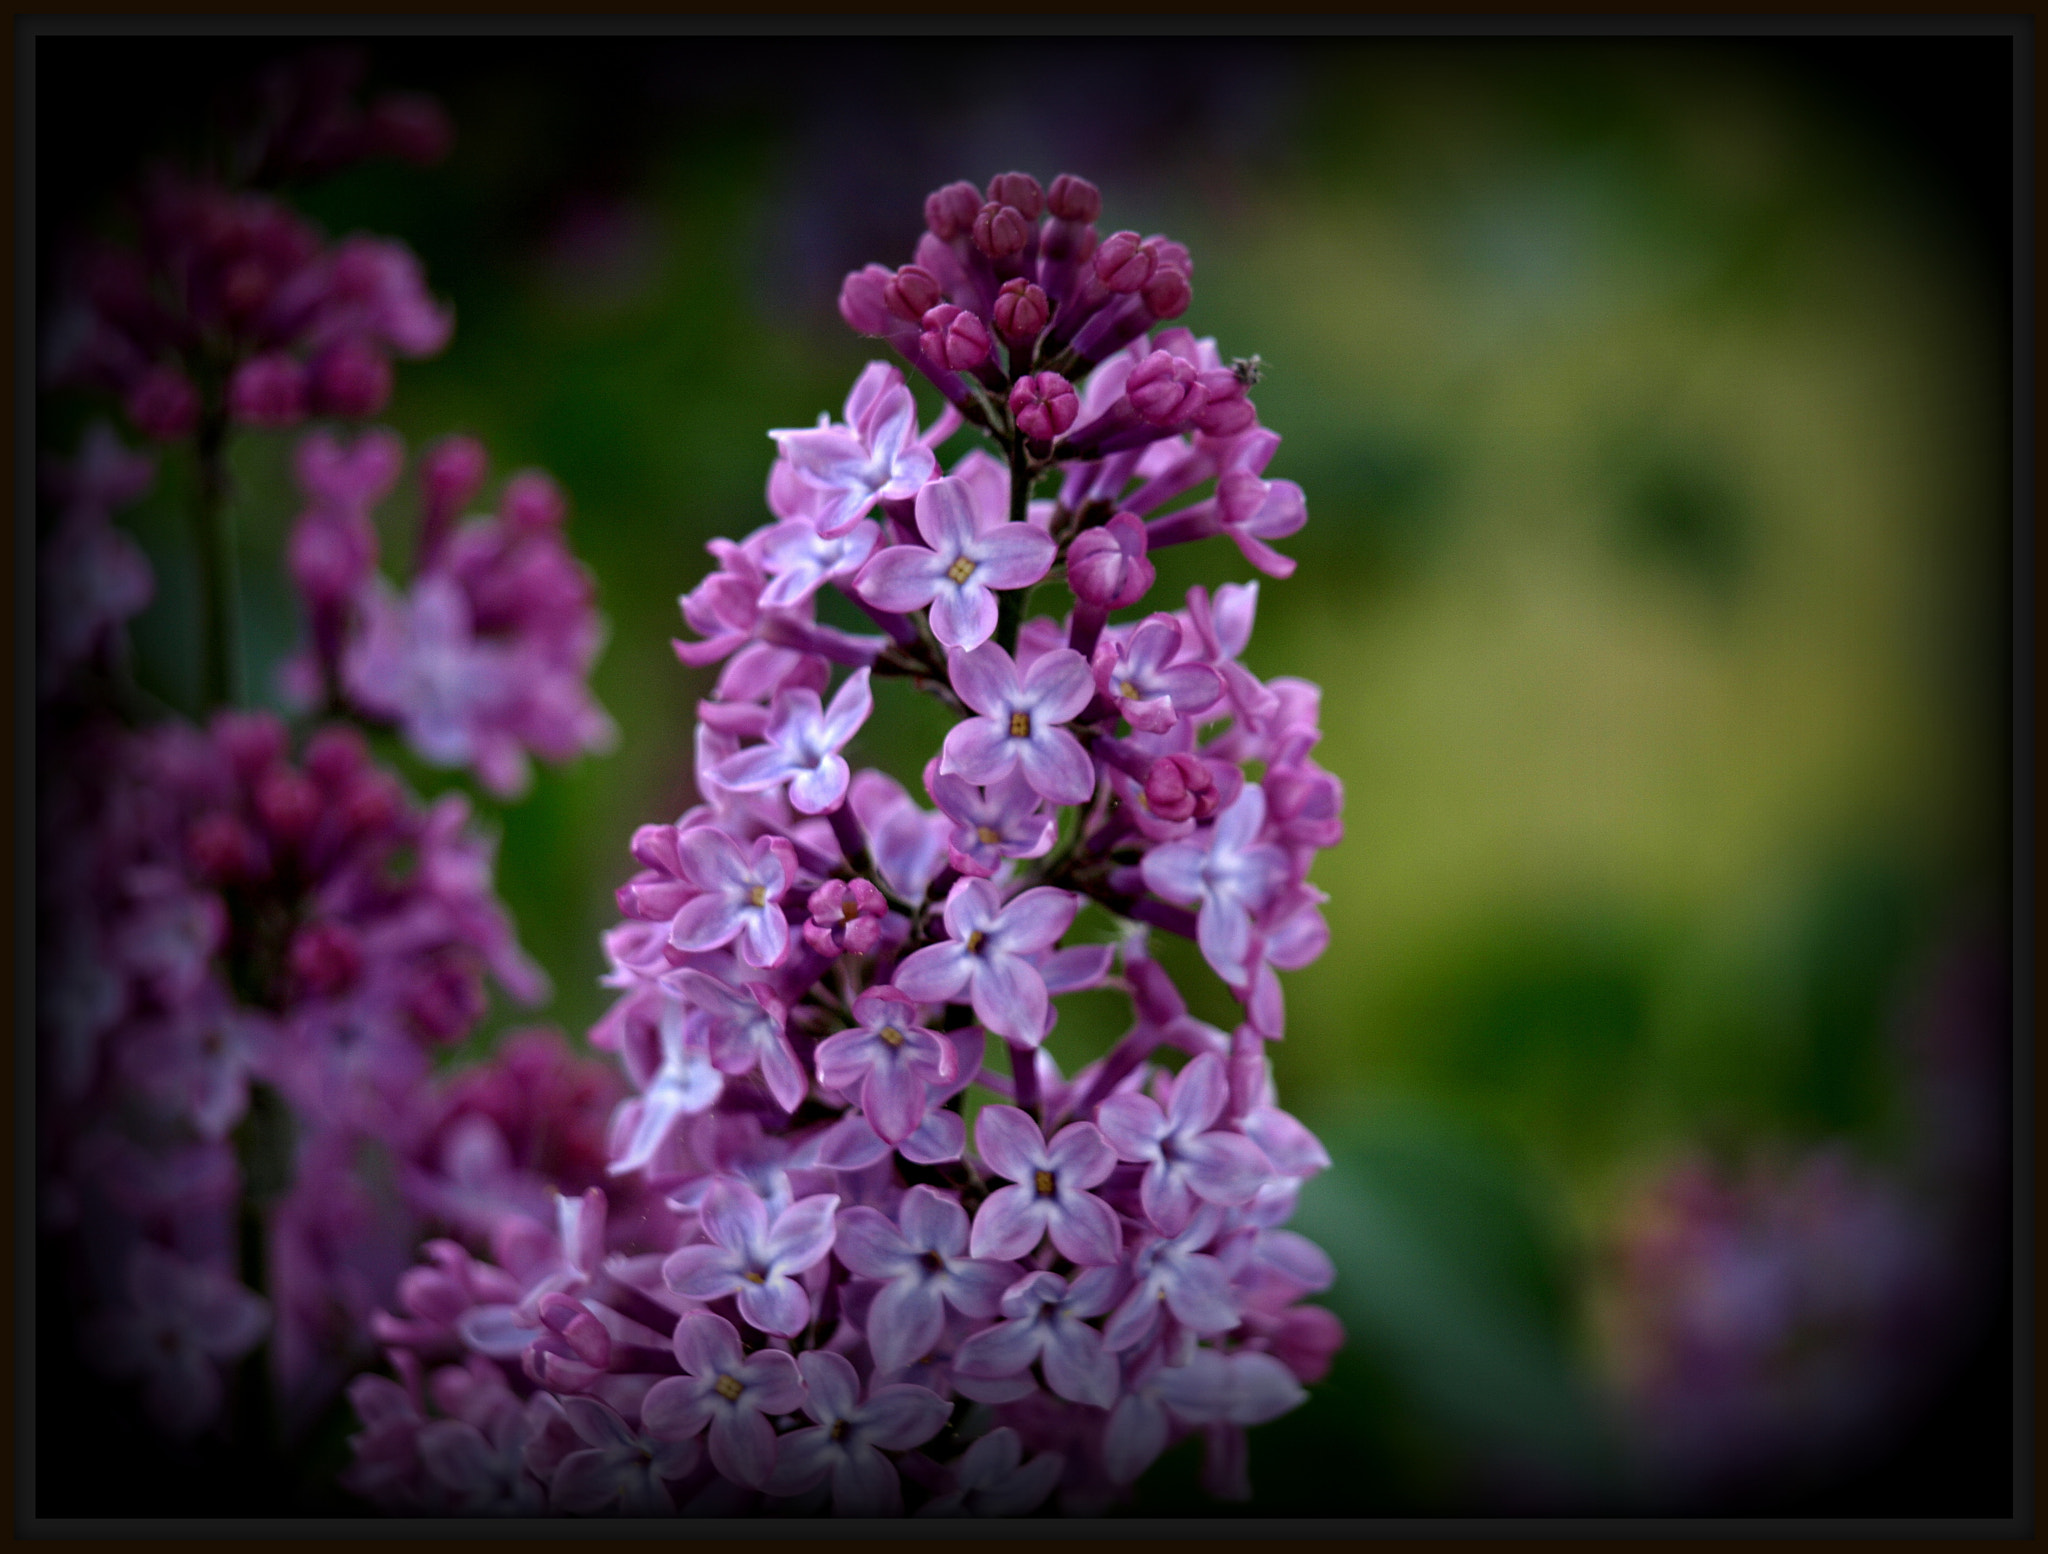 Photograph lilac blossom by AS'photo ( Arnold ) on 500px